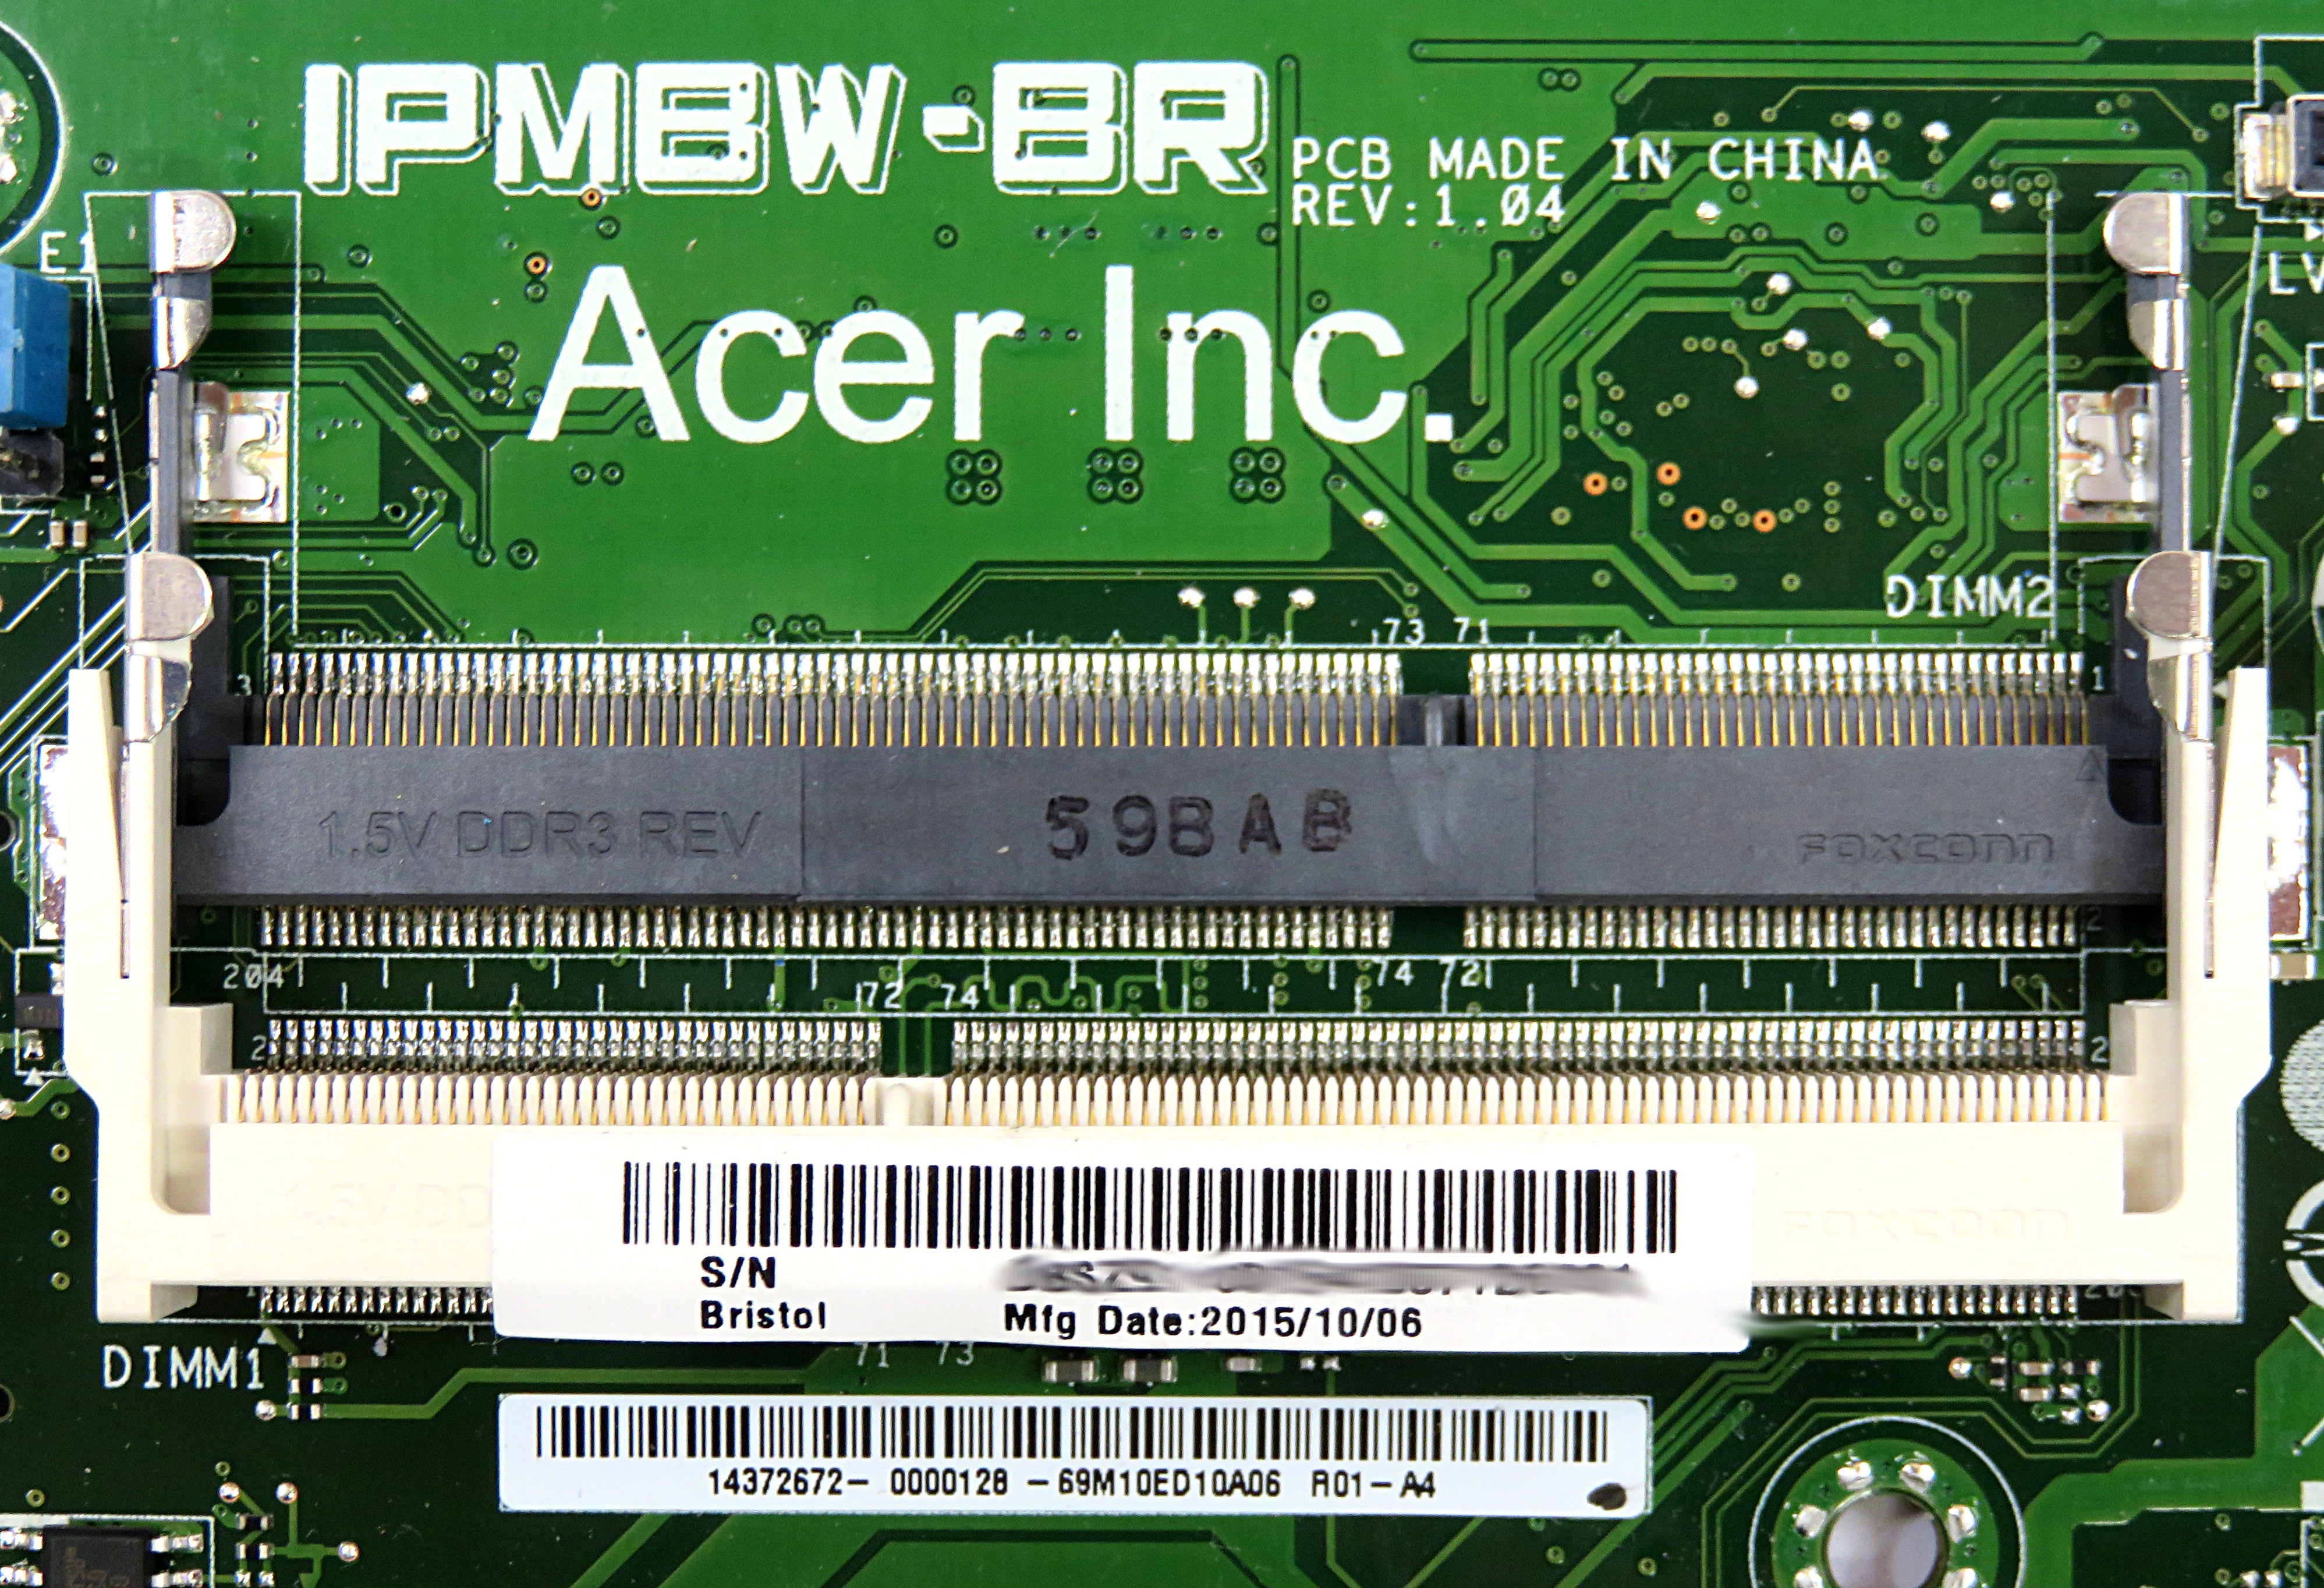 ACER IPMBW-BR WINDOWS 10 DOWNLOAD DRIVER